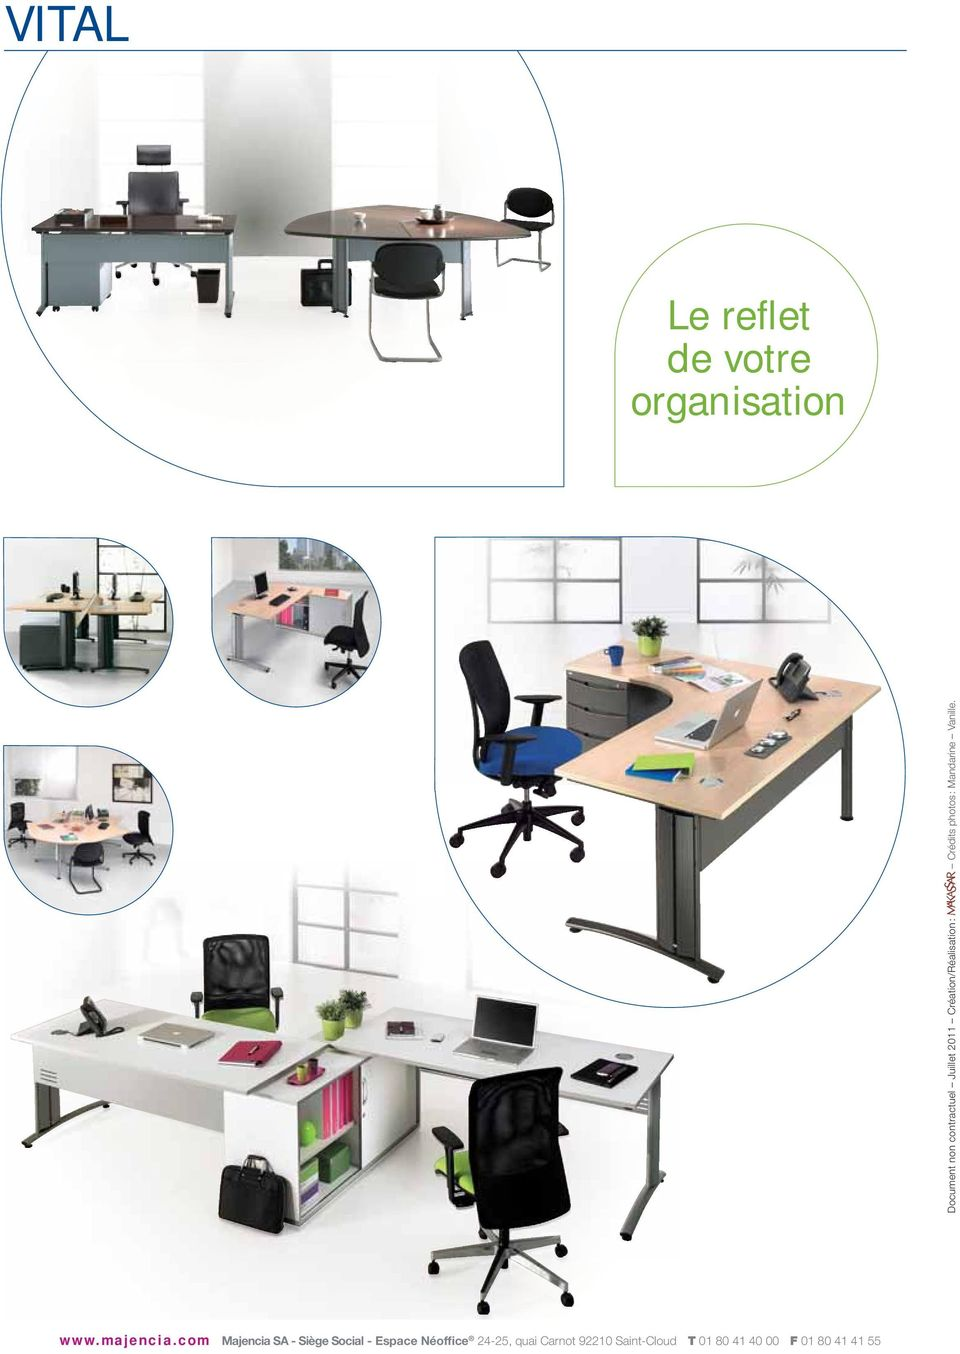 poste de travail vital le reflet de votre organisation cr ateur d espaces durables page 1 pdf. Black Bedroom Furniture Sets. Home Design Ideas